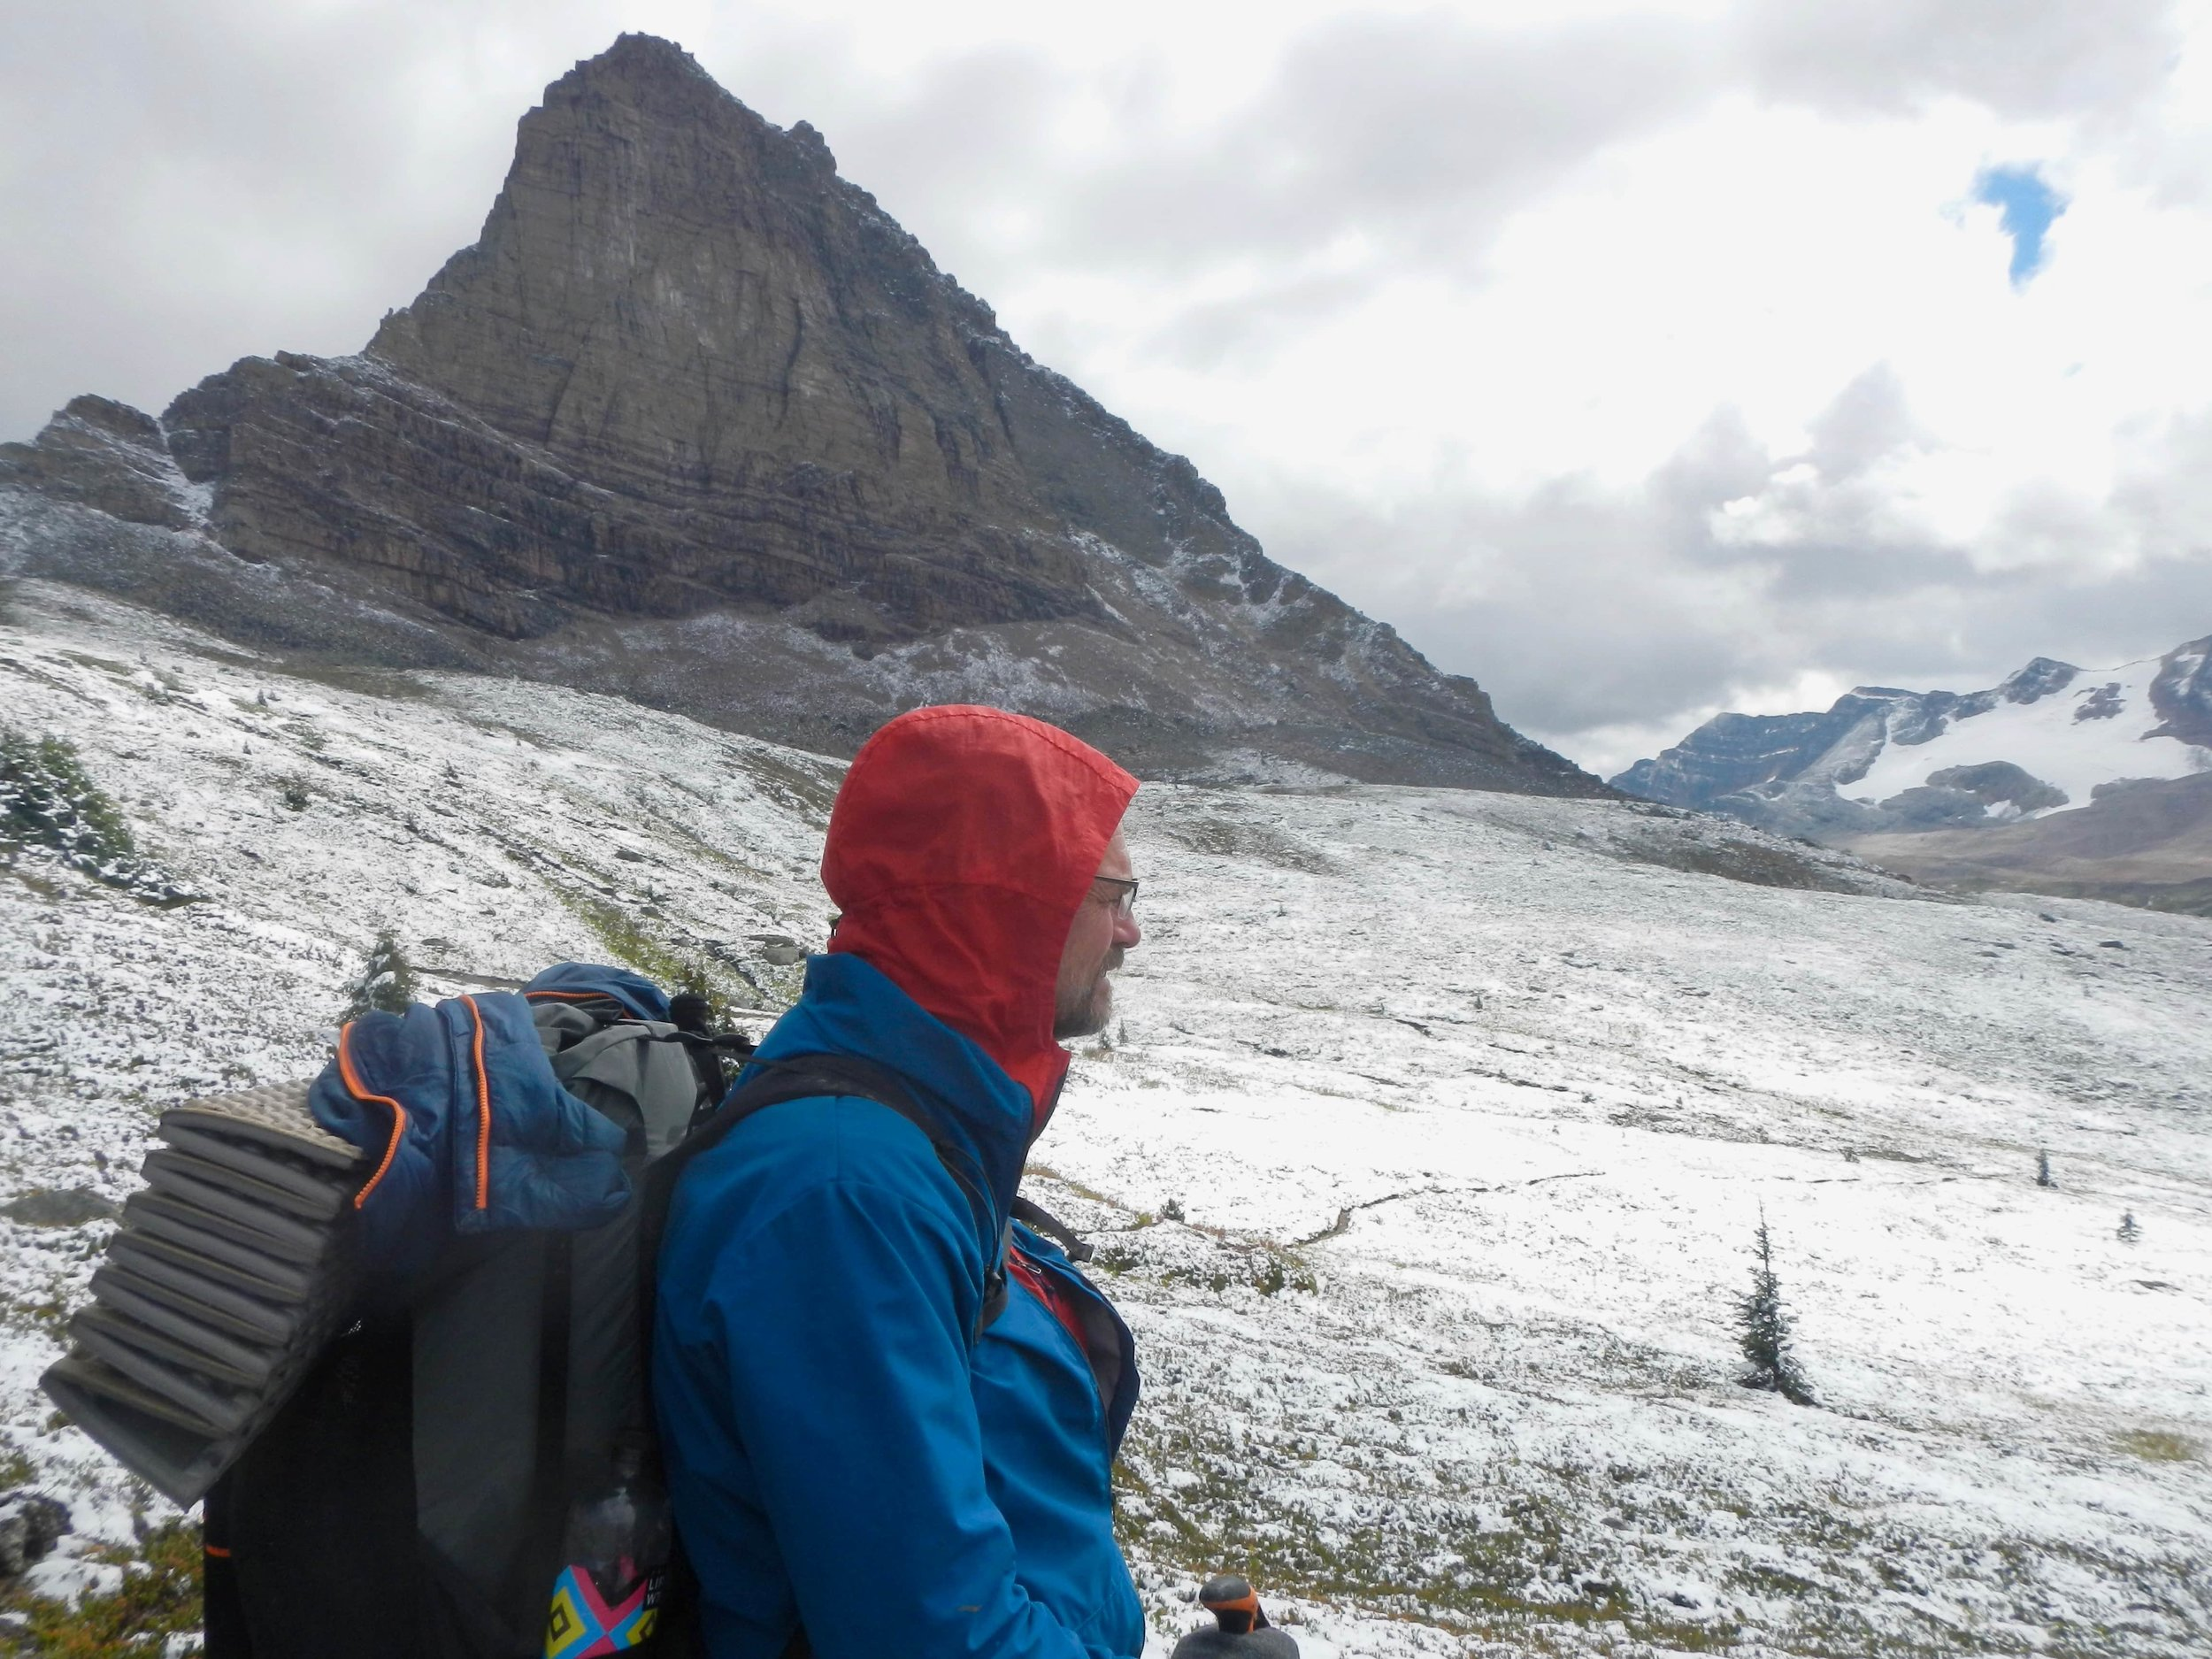 The Therm-a-Rest ZLite is easily stored on the outside of your pack without worry of precipitation because it doesn't absorb water. Photo courtesy Naomi Hudetz